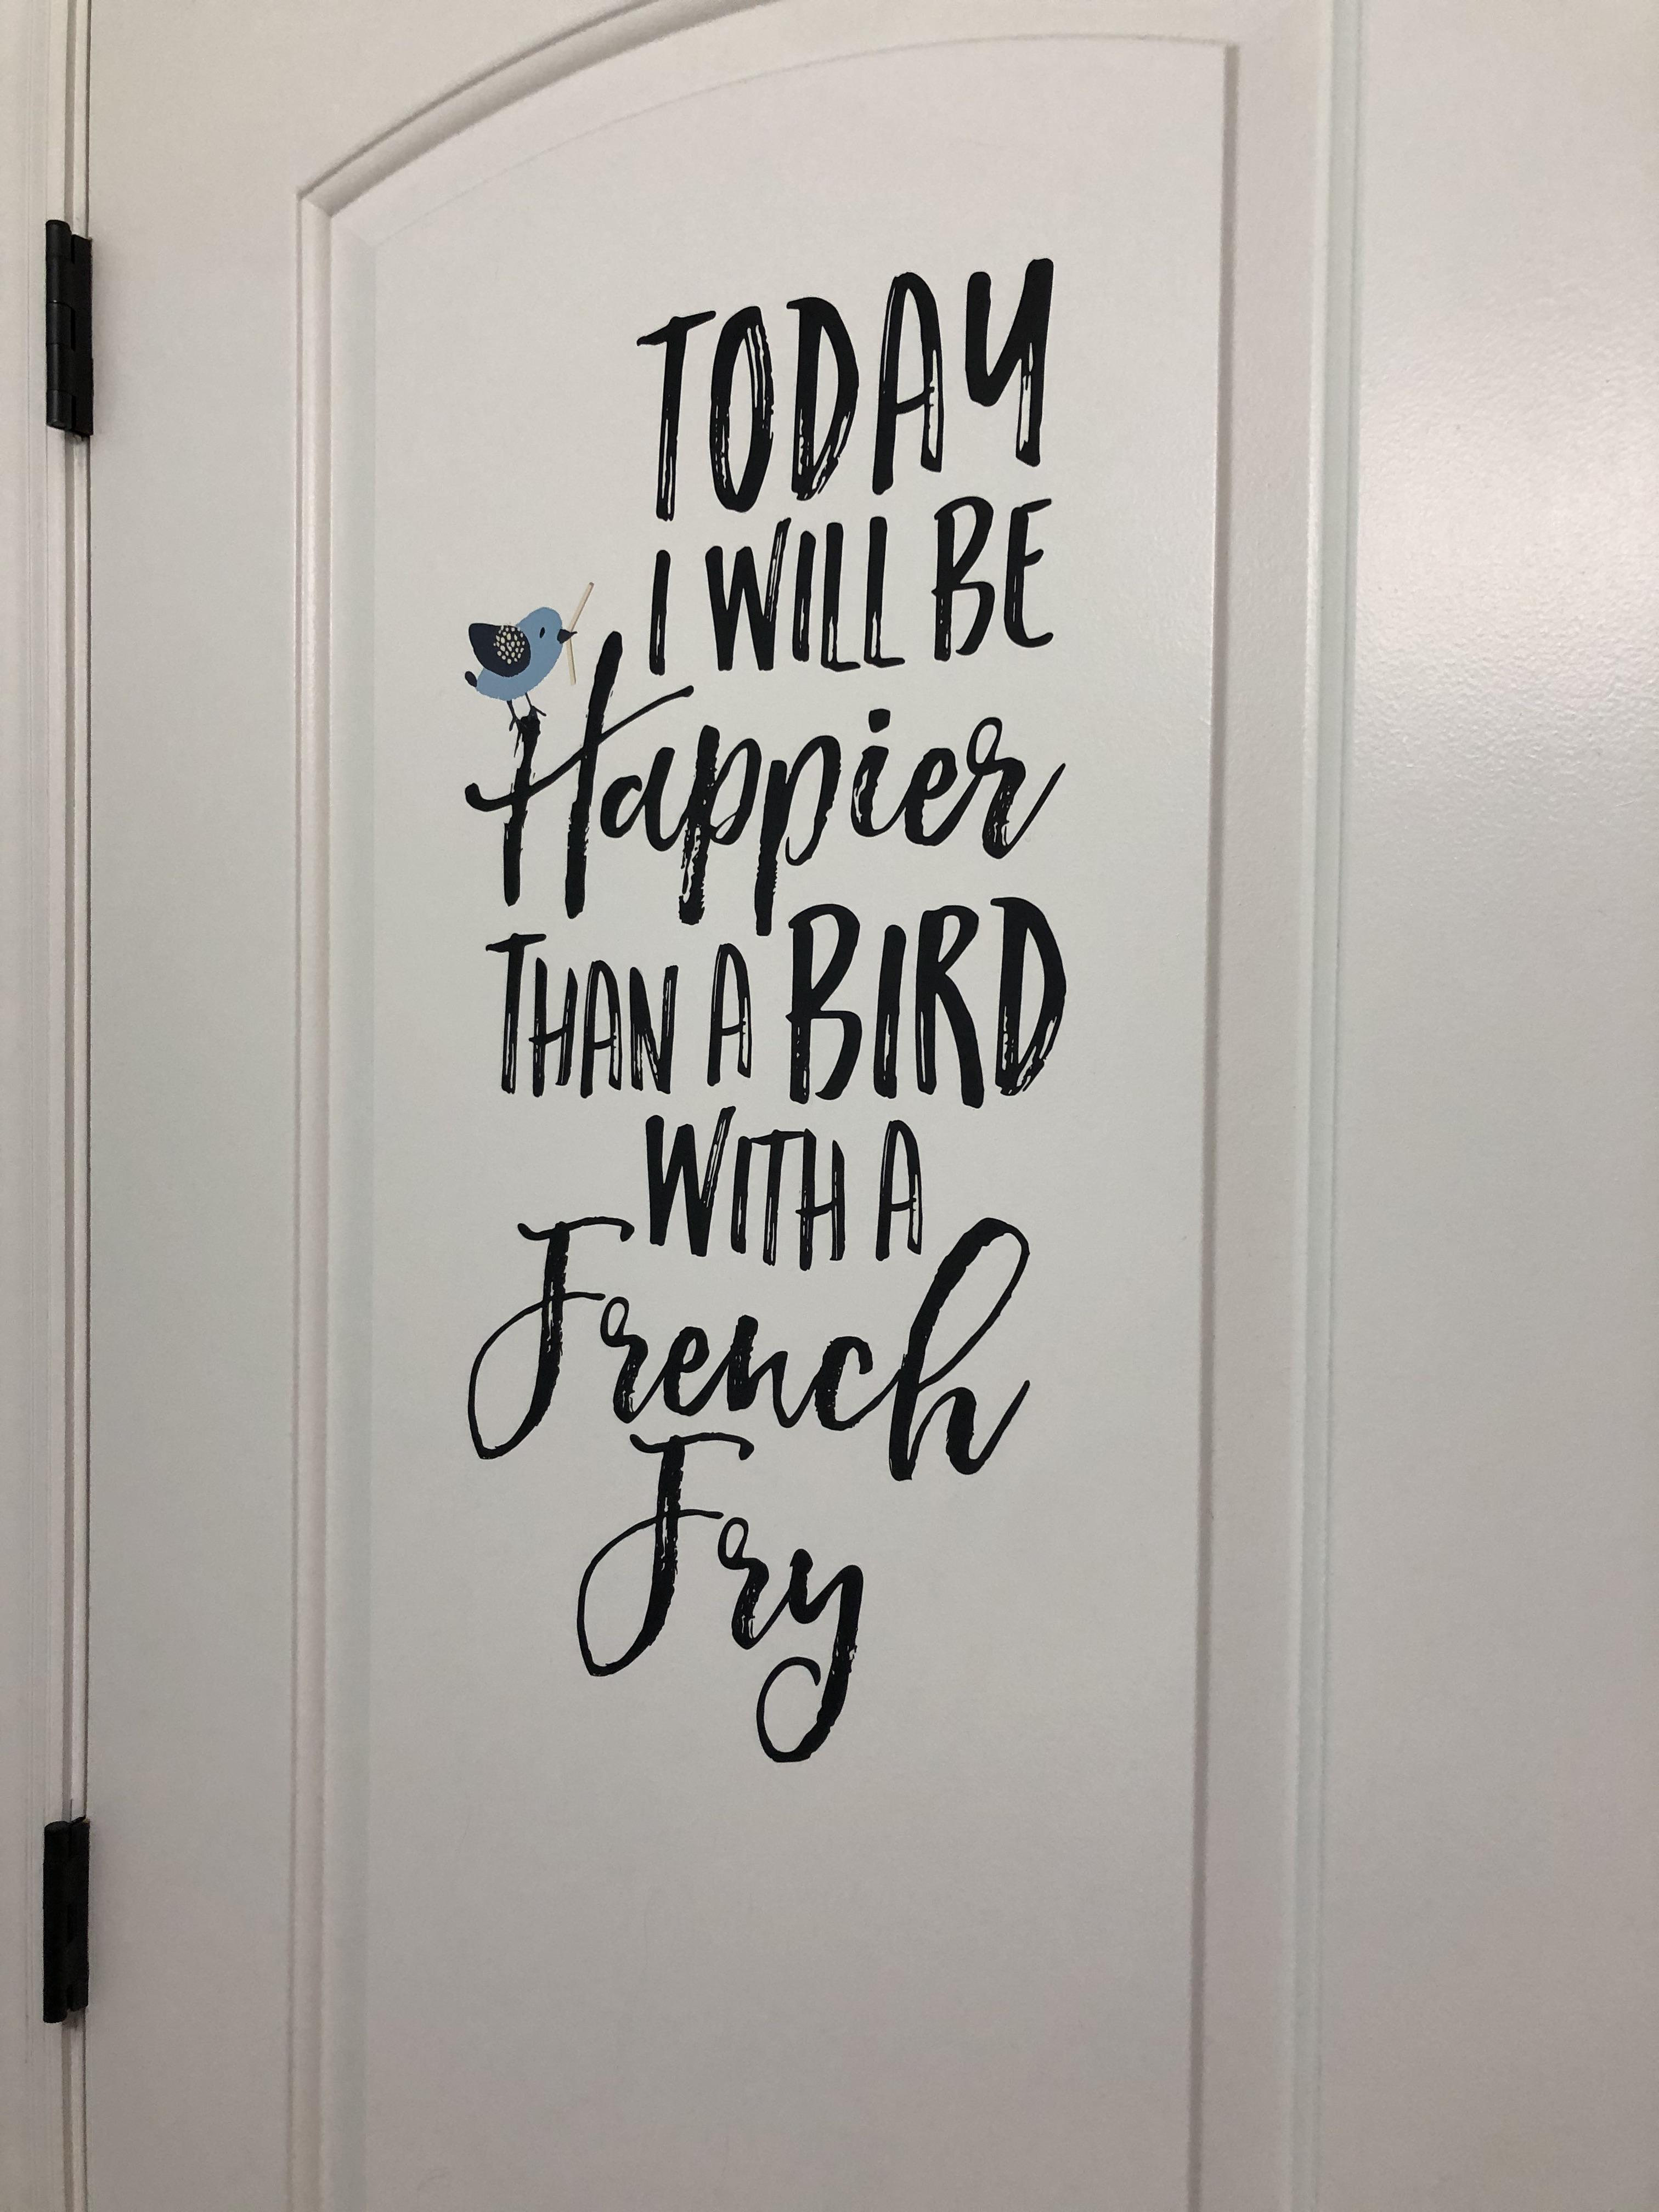 [Image] This is on the back of my door. It makes me smile as I start my day. I hope it makes you smile, too.